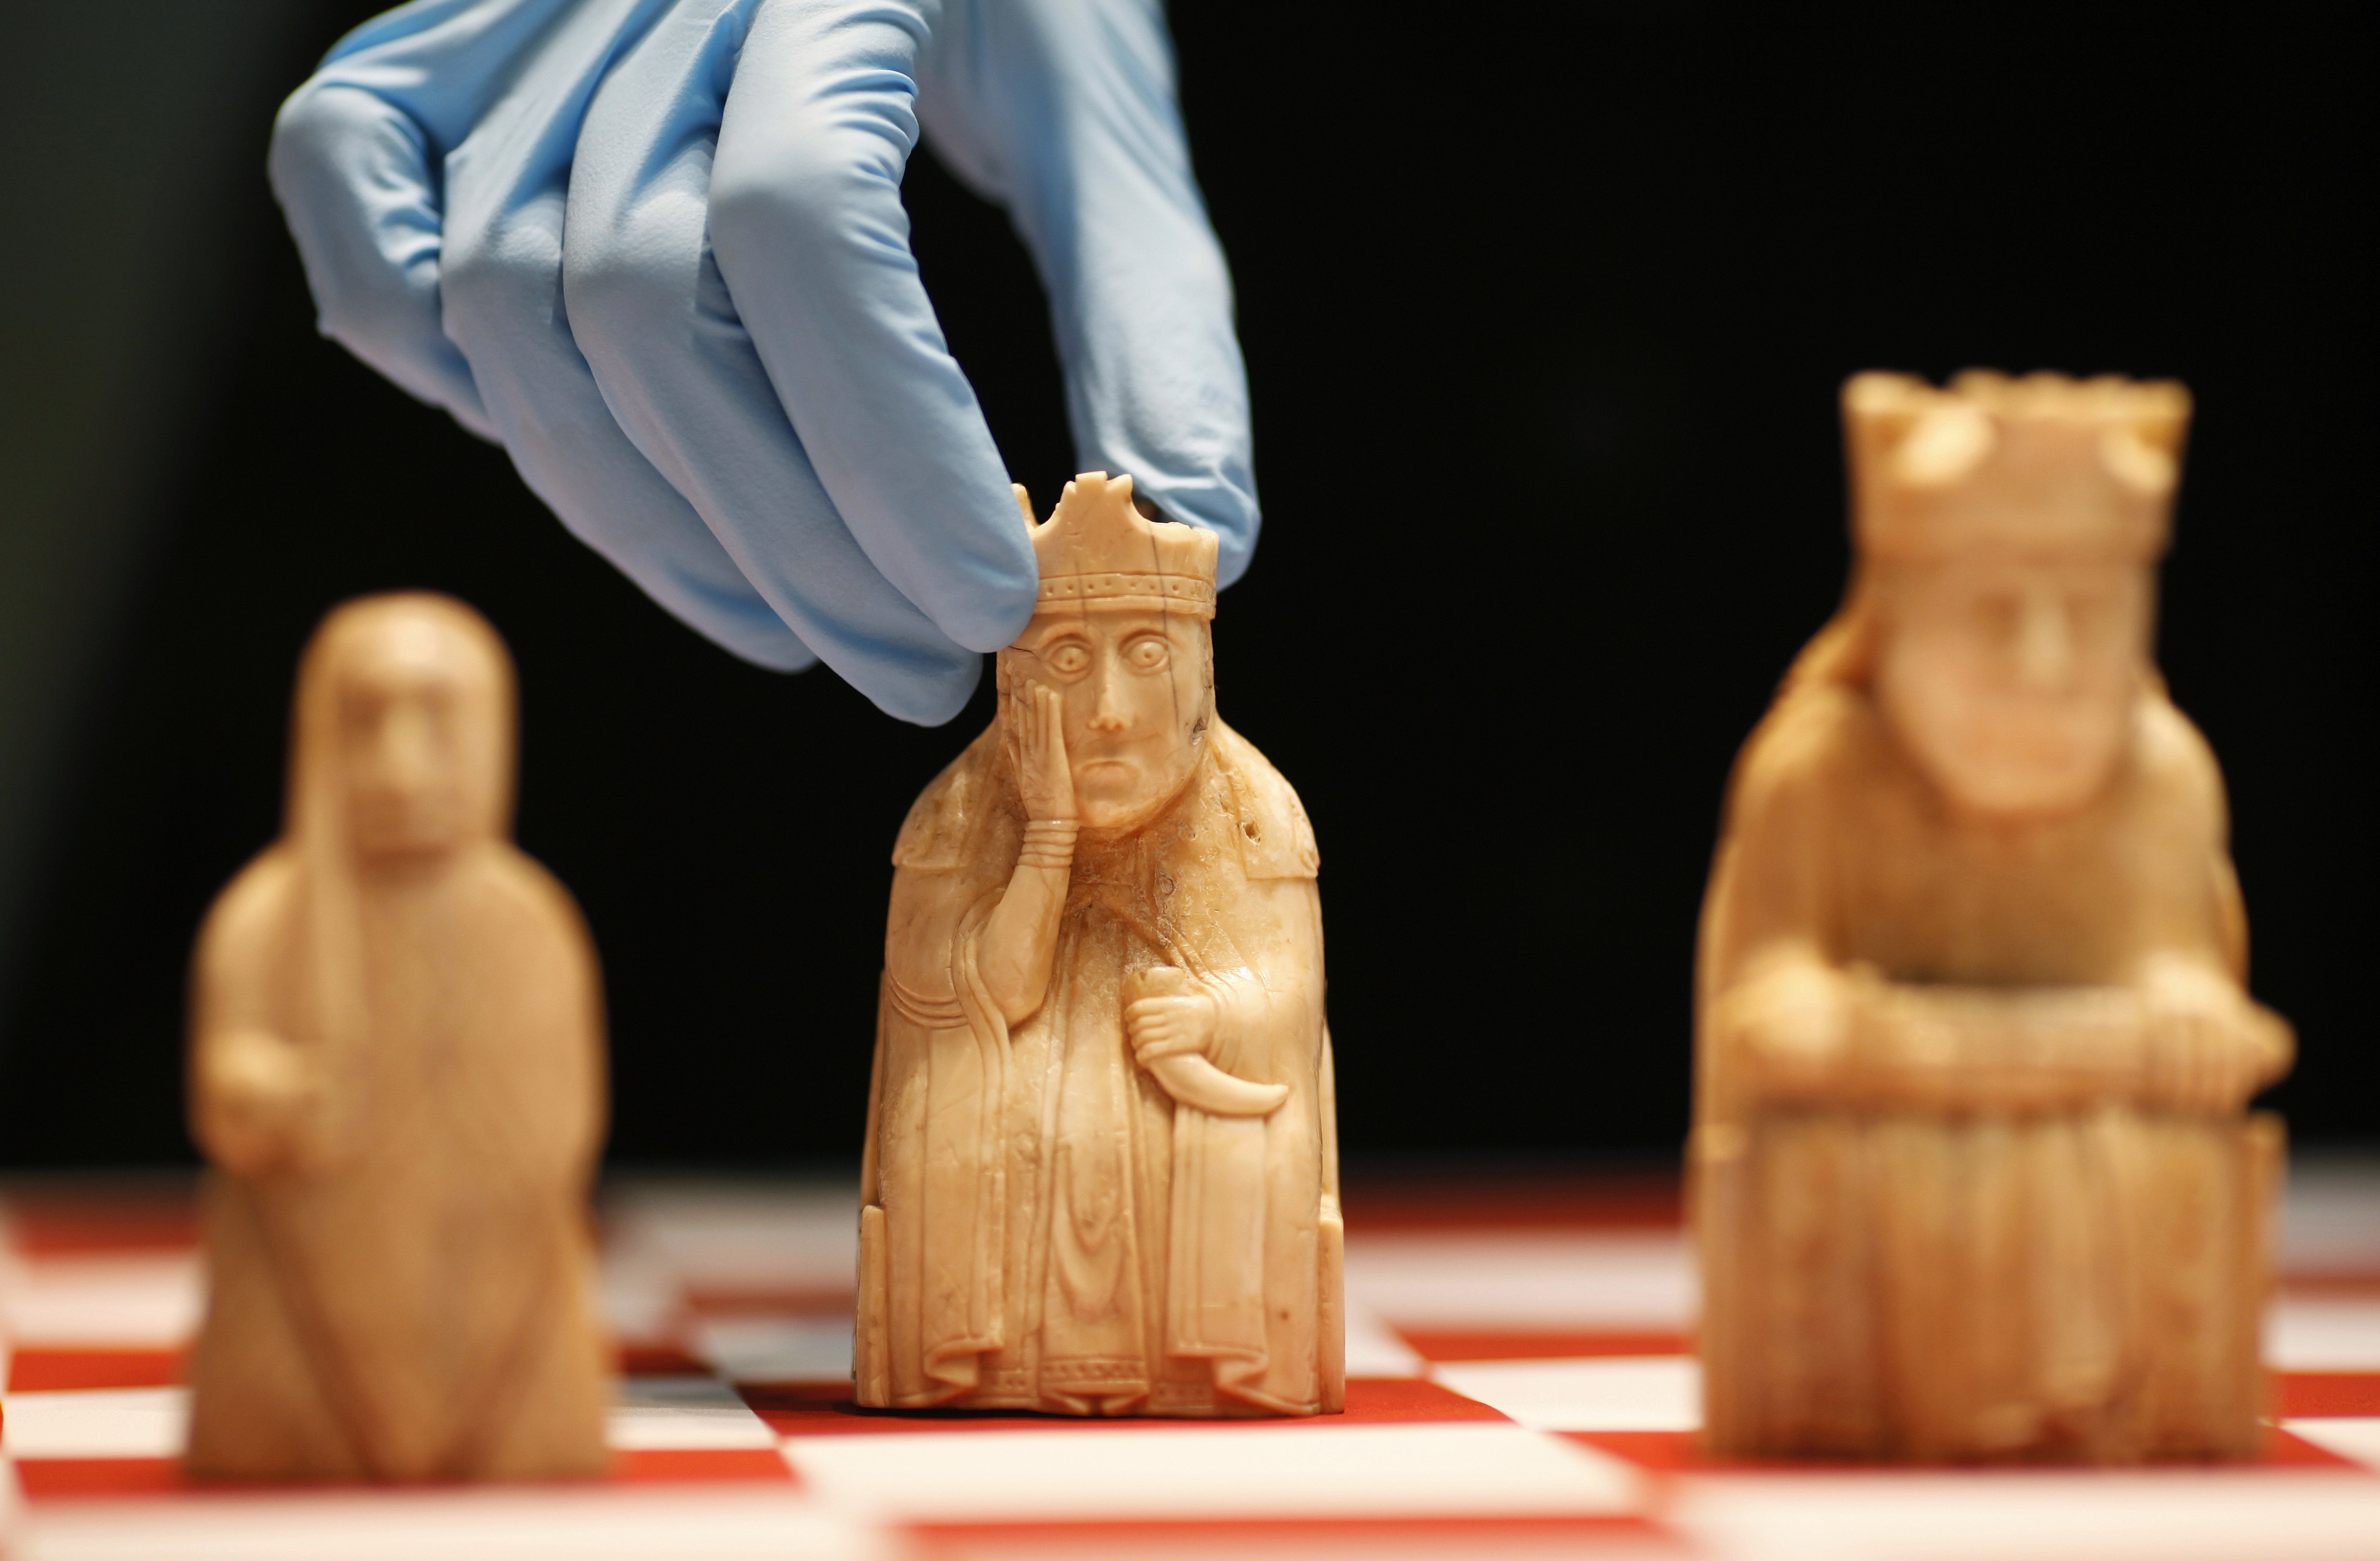 A worker at the British Museum arranges the Lewis Chessmen on a chess board in London March 16, 2009. The Lewis Chessmen, made of walrus ivory circa 1150-1200 AD, are among the museum's most popular objects and the most famous in the medieval collection and will form part of the exhibit in the museum's new medieval gallery.  REUTERS/Andrew Winning   (BRITAIN SOCIETY) - GM1E53G1U5901